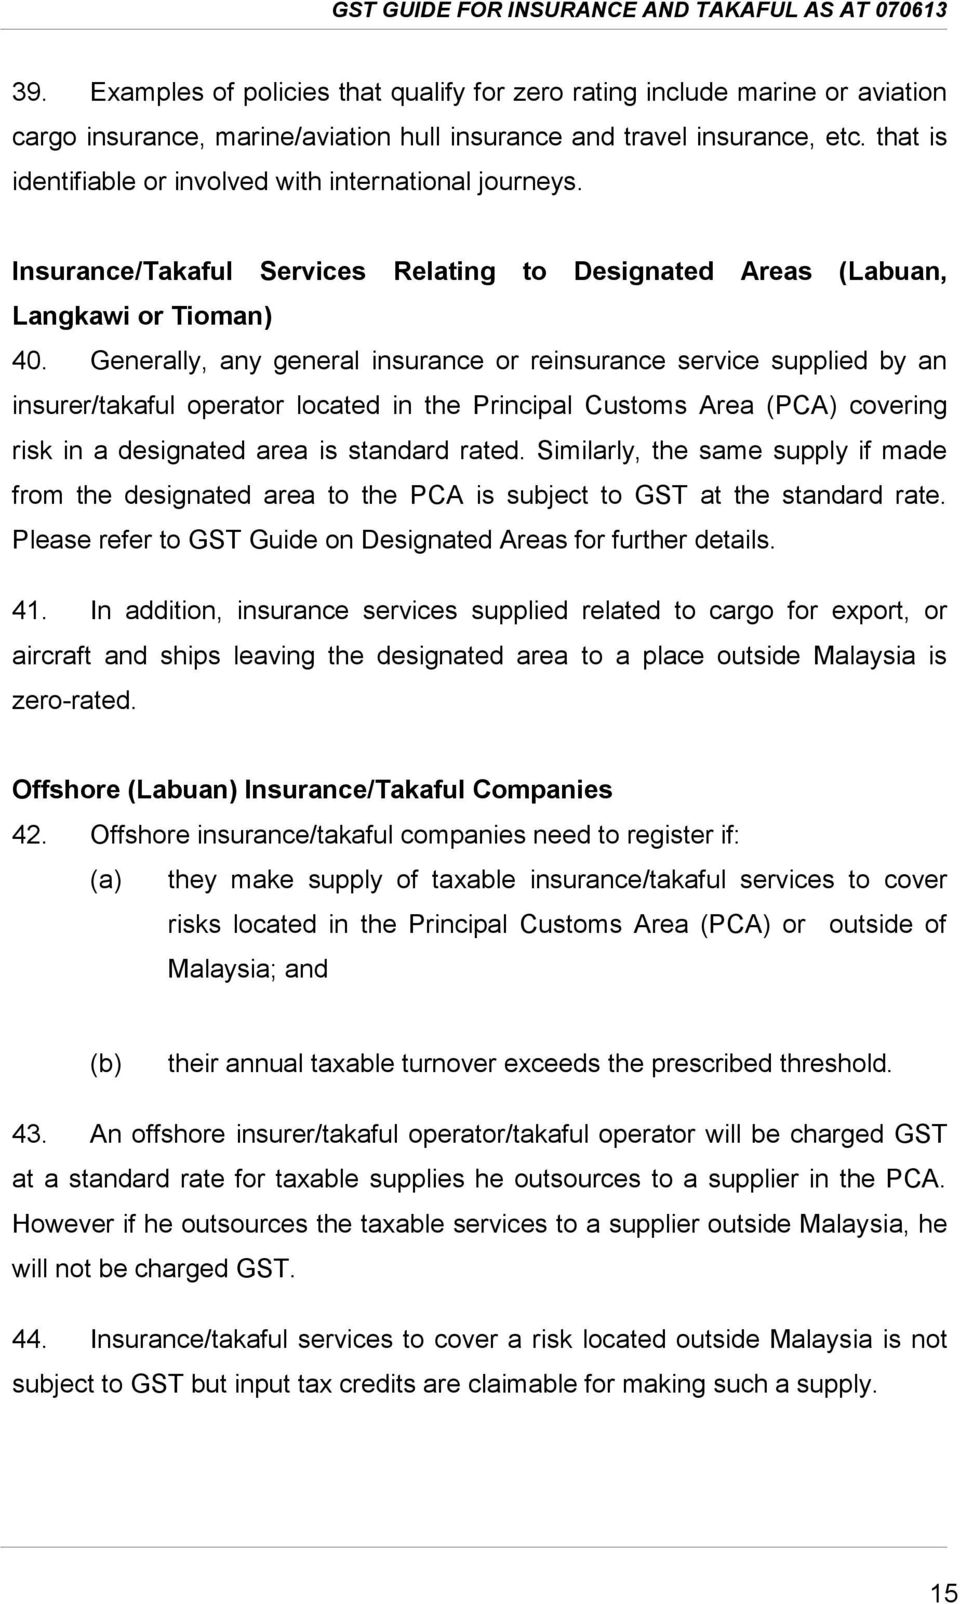 Generally, any general insurance or reinsurance service supplied by an insurer/takaful operator located in the Principal Customs Area (PCA) covering risk in a designated area is standard rated.